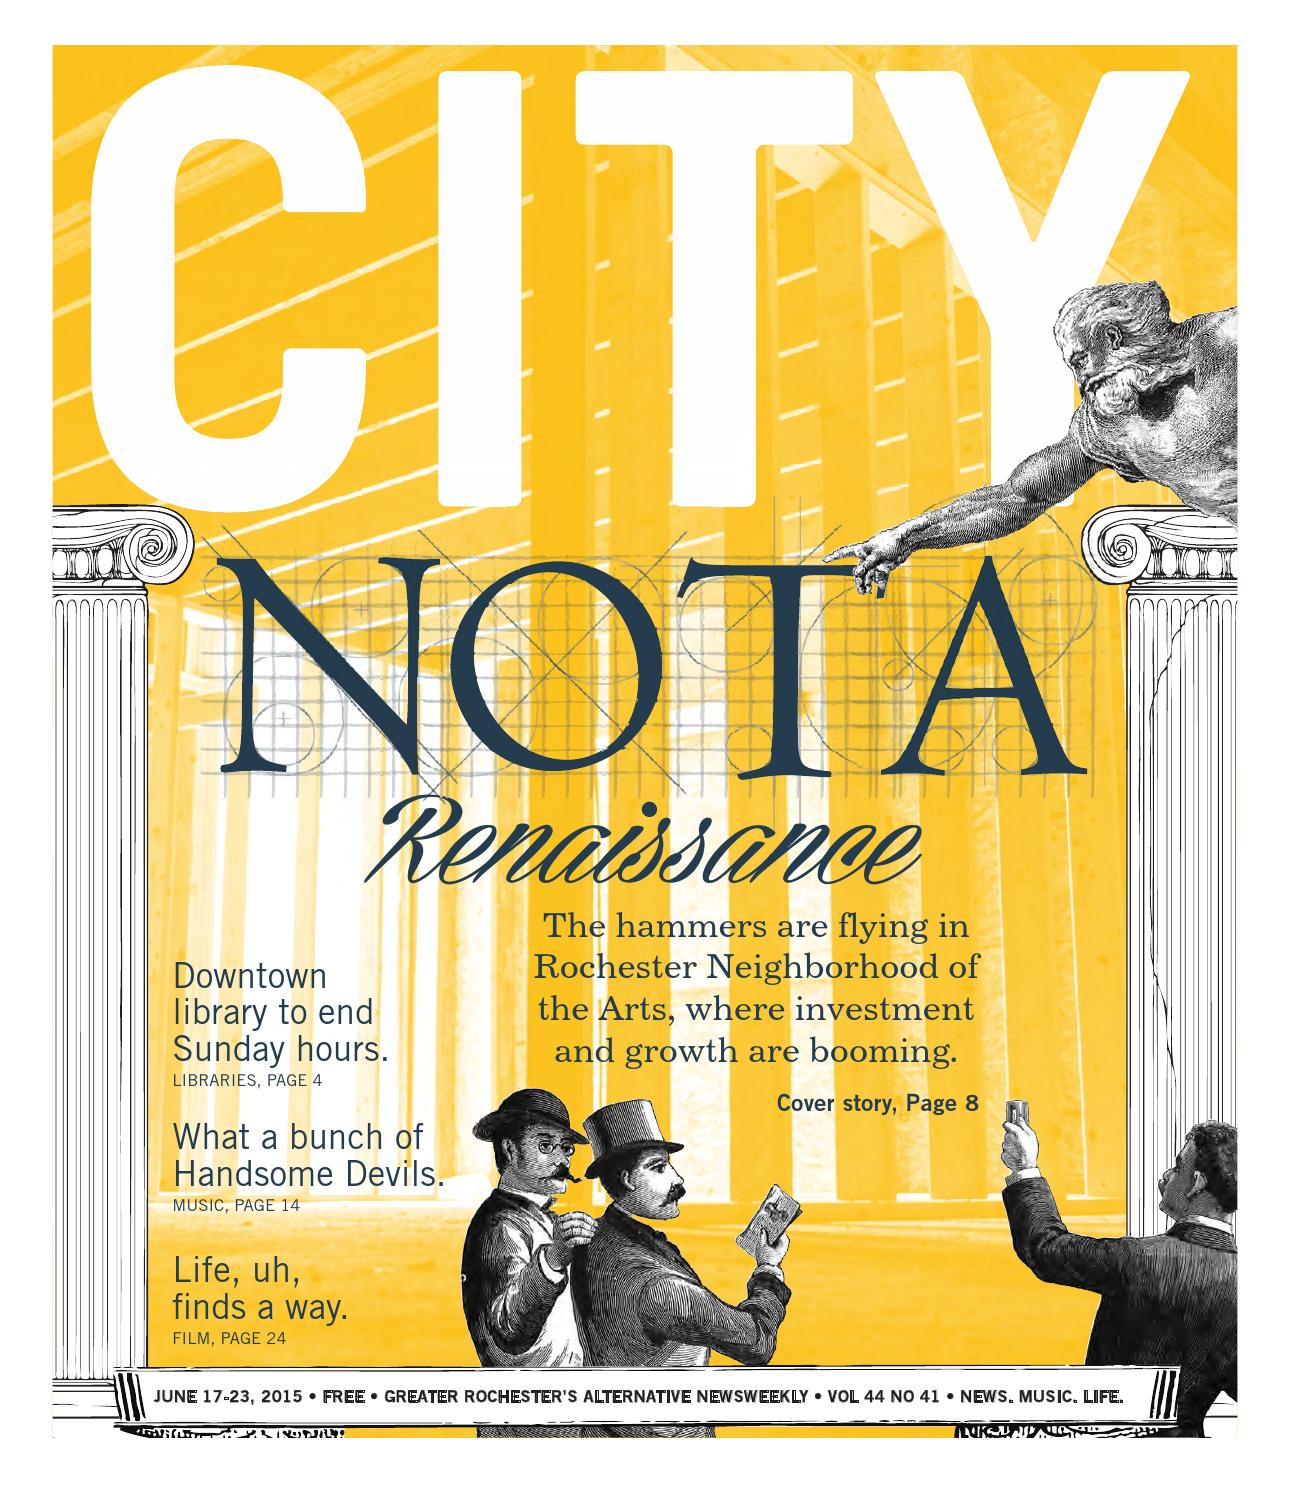 June 17-23, 2015 - CITY Newspaper by Rochester City